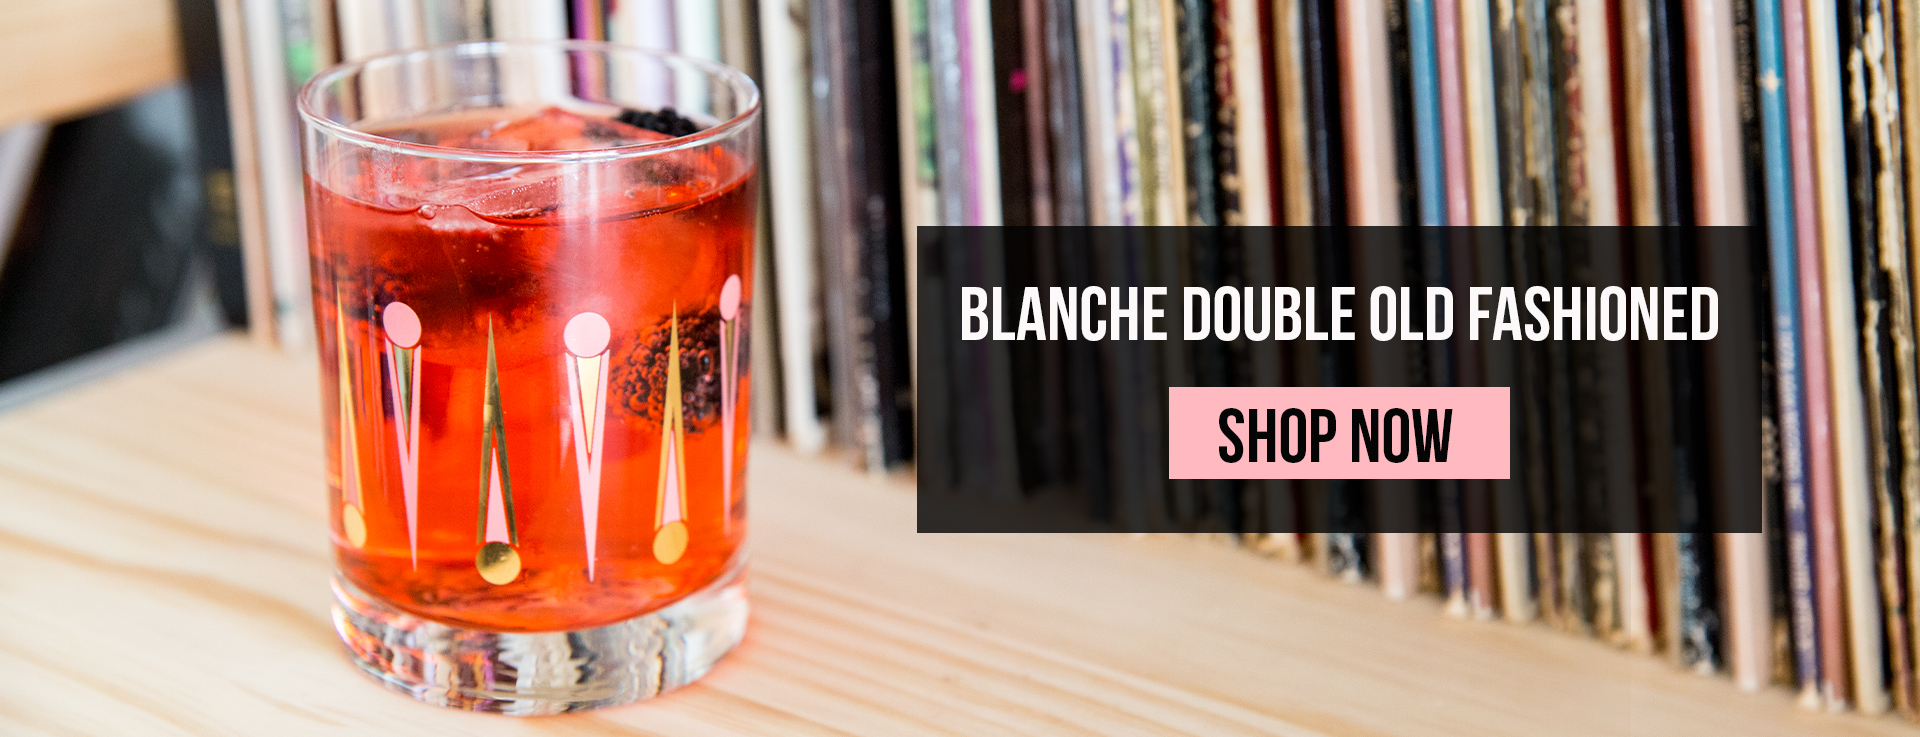 Blanche Double Old Fashioned Shop Now